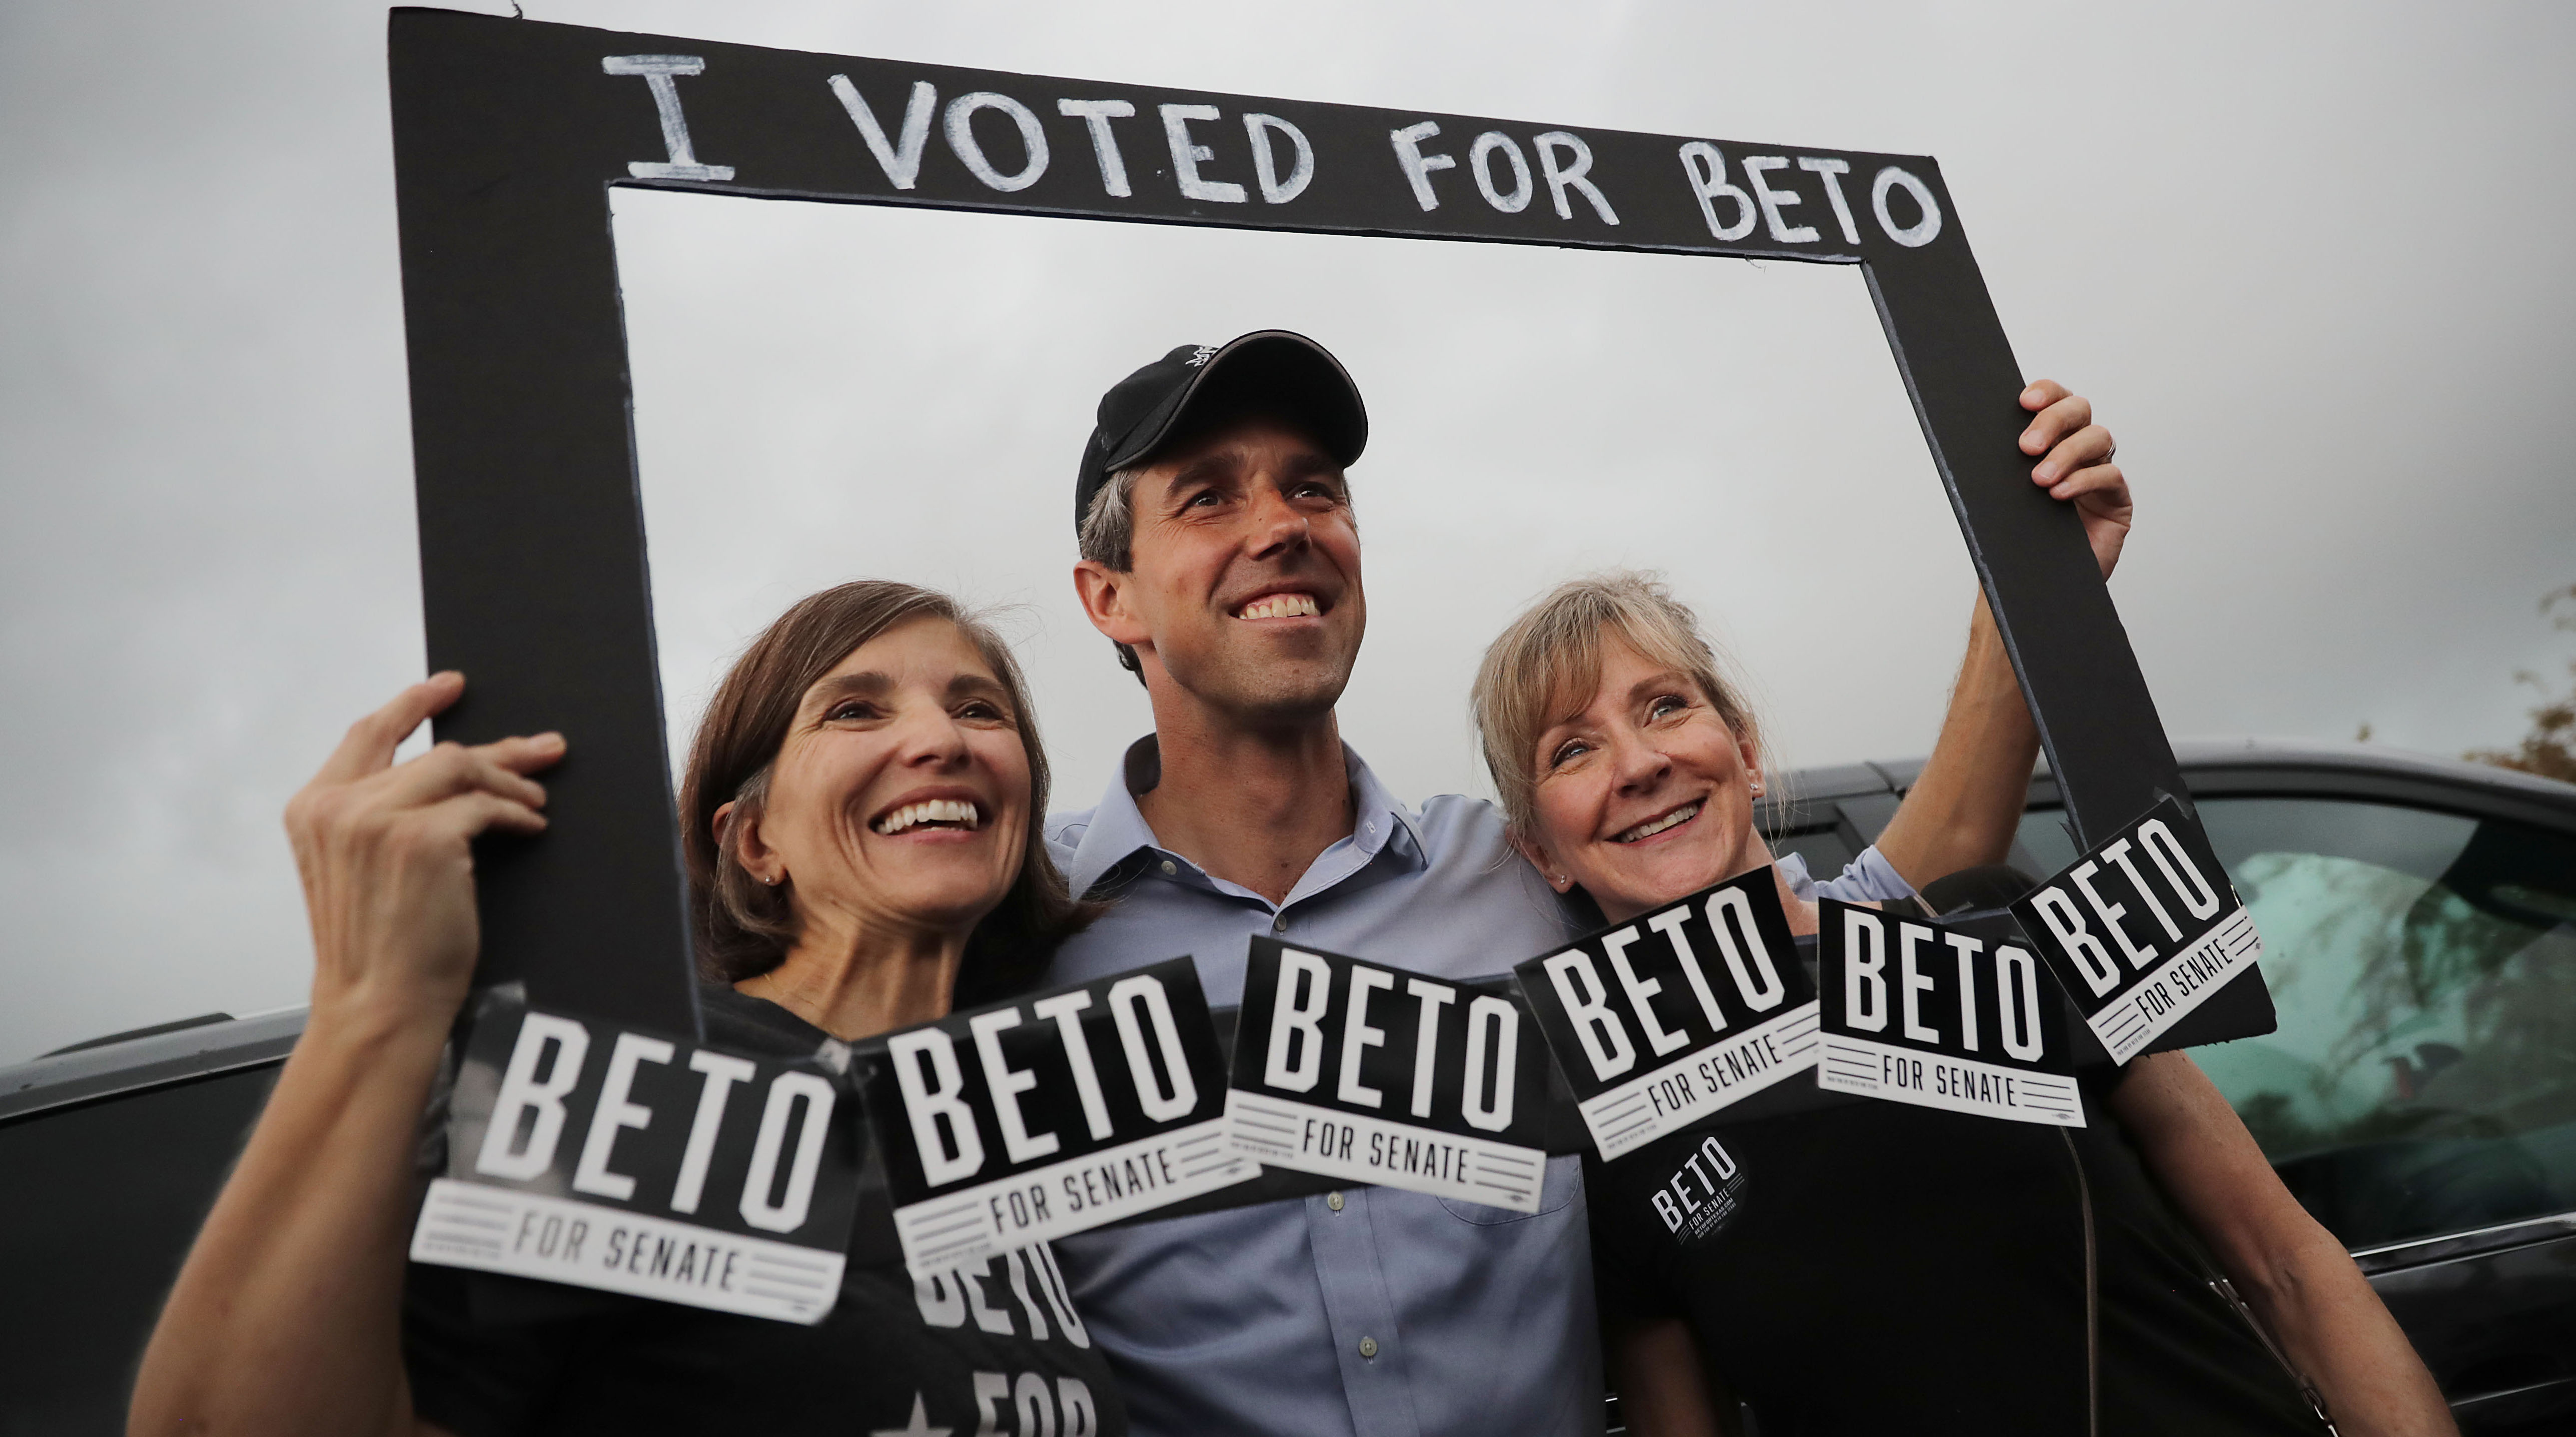 SAN ANTONIO, TEXAS - OCTOBER 31: U.S. Senate candidate Rep. Beto O'Rourke (D-TX) poses for photographs with supporters during a campaign rally at Gilbert Garza Park October 31, 2018 in San Antonio, Texas. With less than a week before Election Day, O'Rourke is driving across the state in his race against incumbent Sen. Ted Cruz (R-TX). (Photo by Chip Somodevilla/Getty Images)